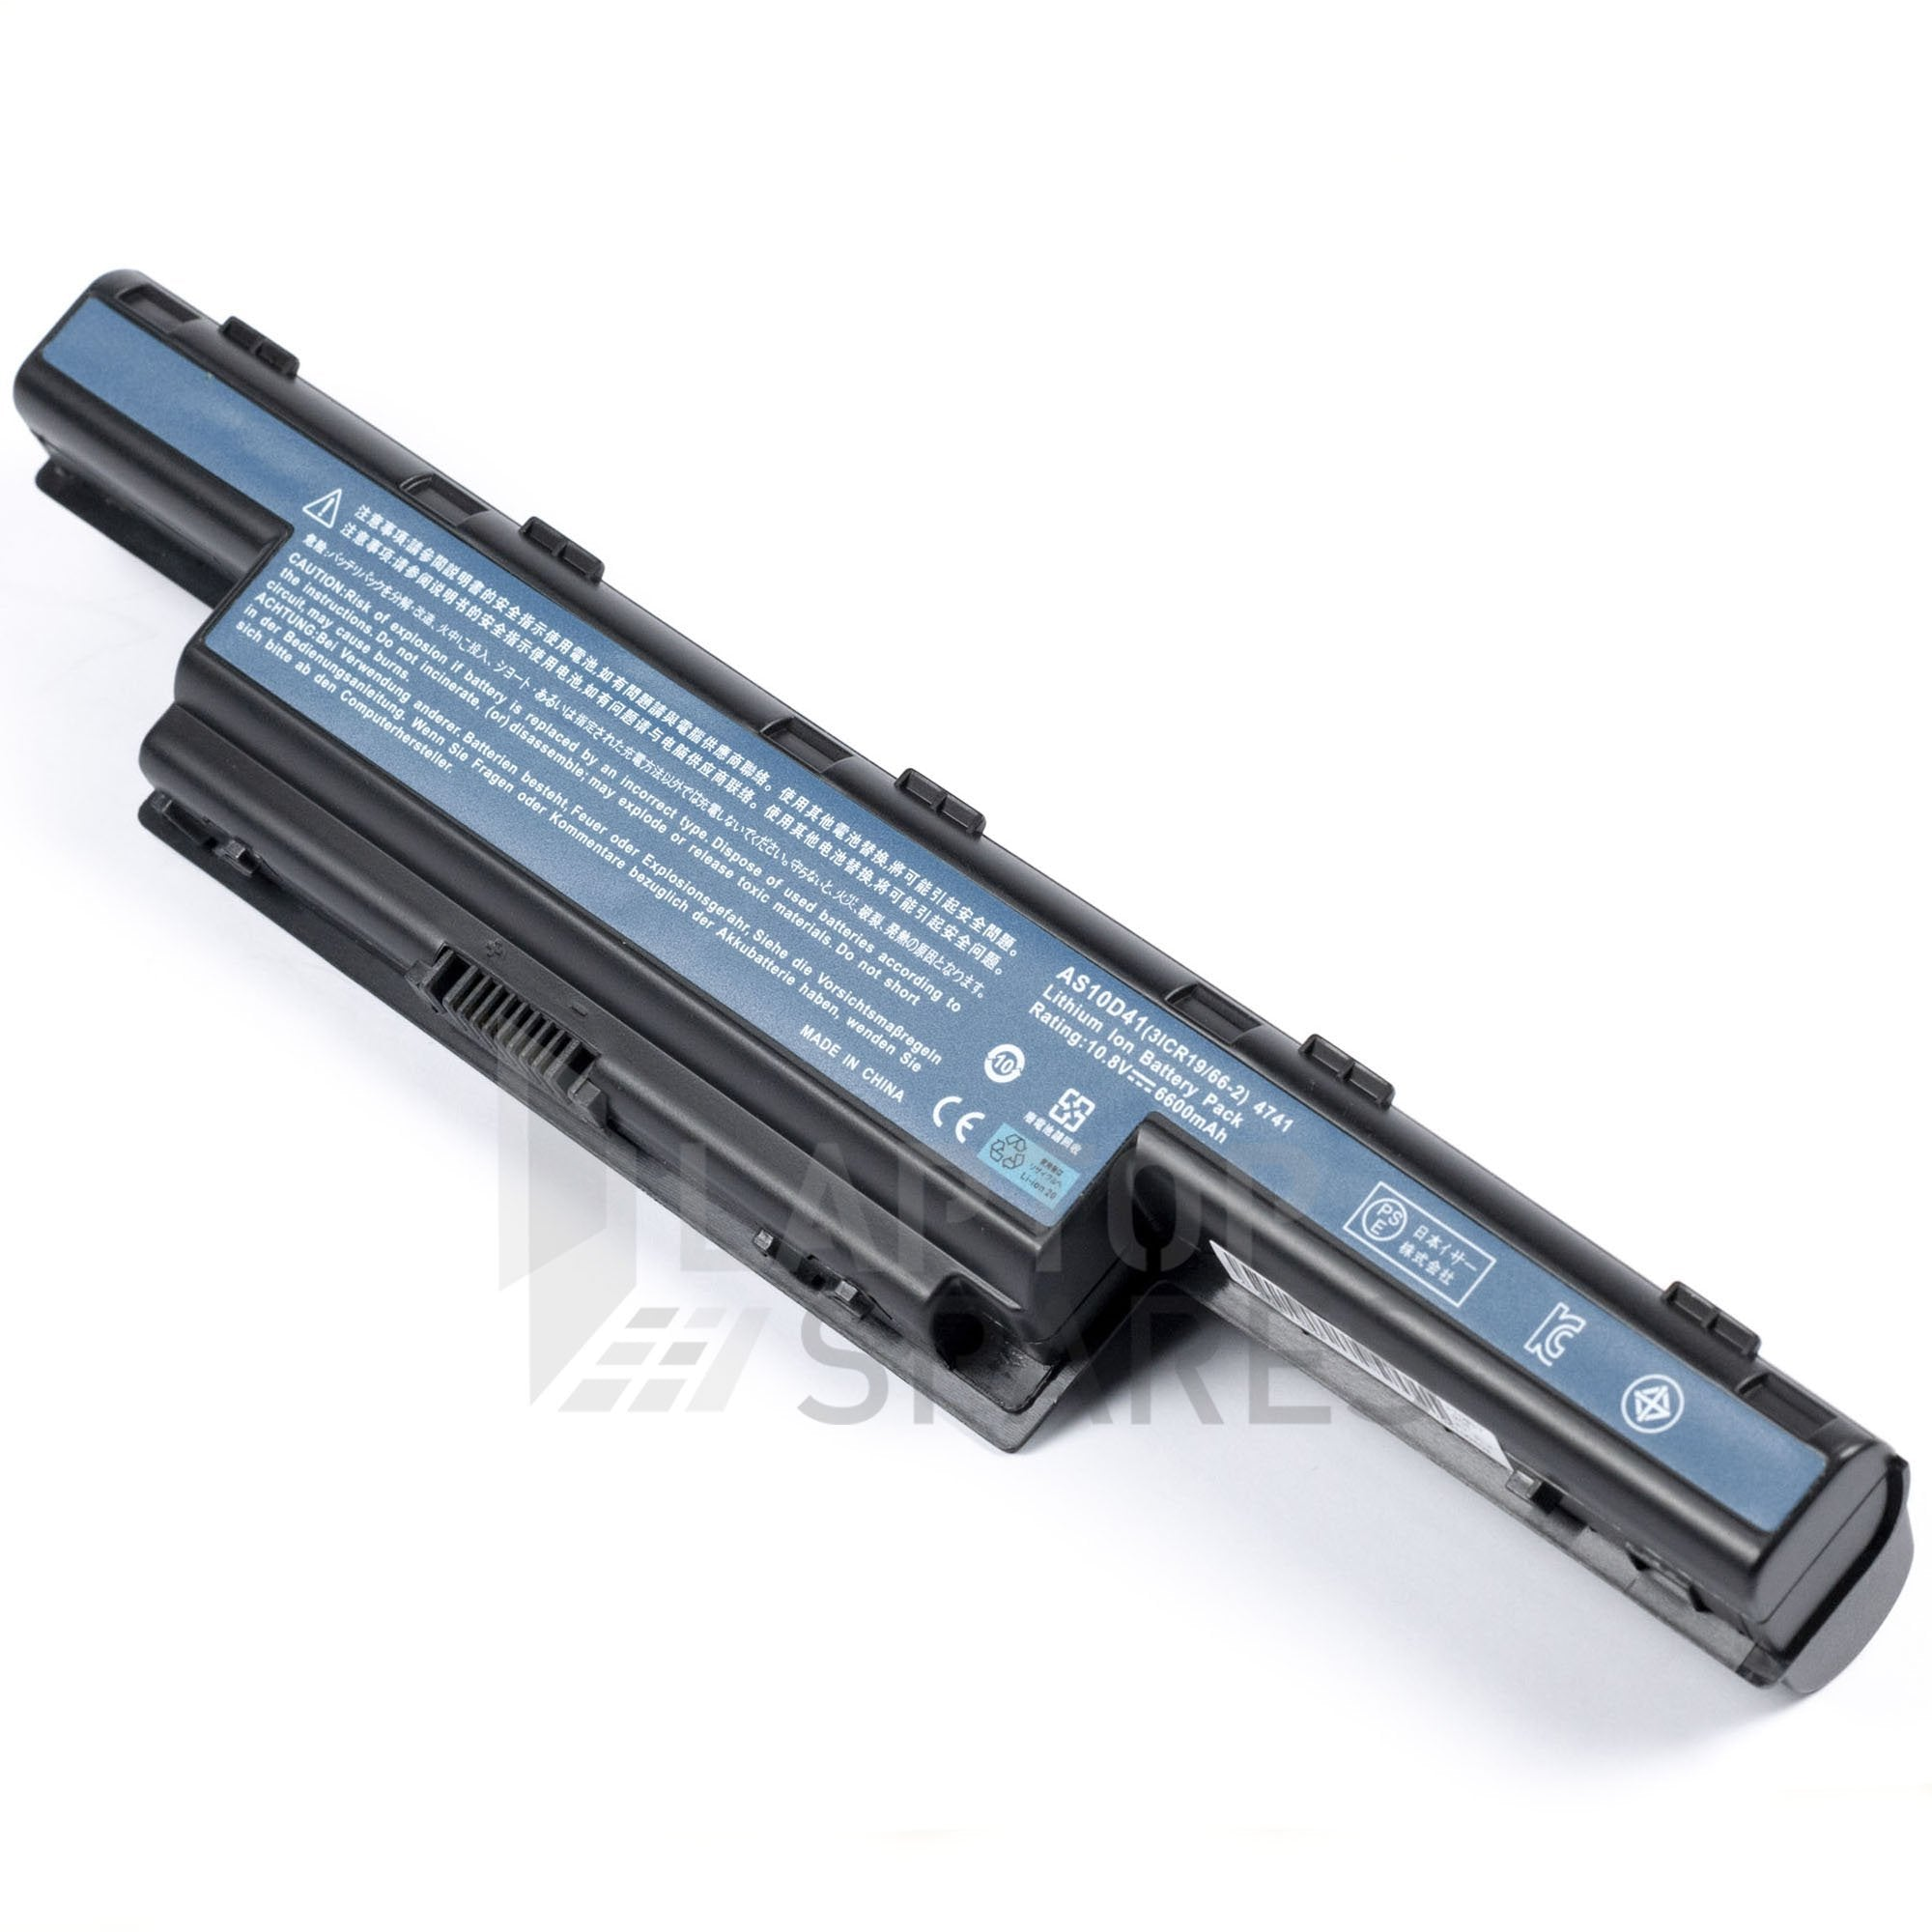 Acer Aspire 4743Z 4743ZG 4750G 6600mAh 9 Cell Battery